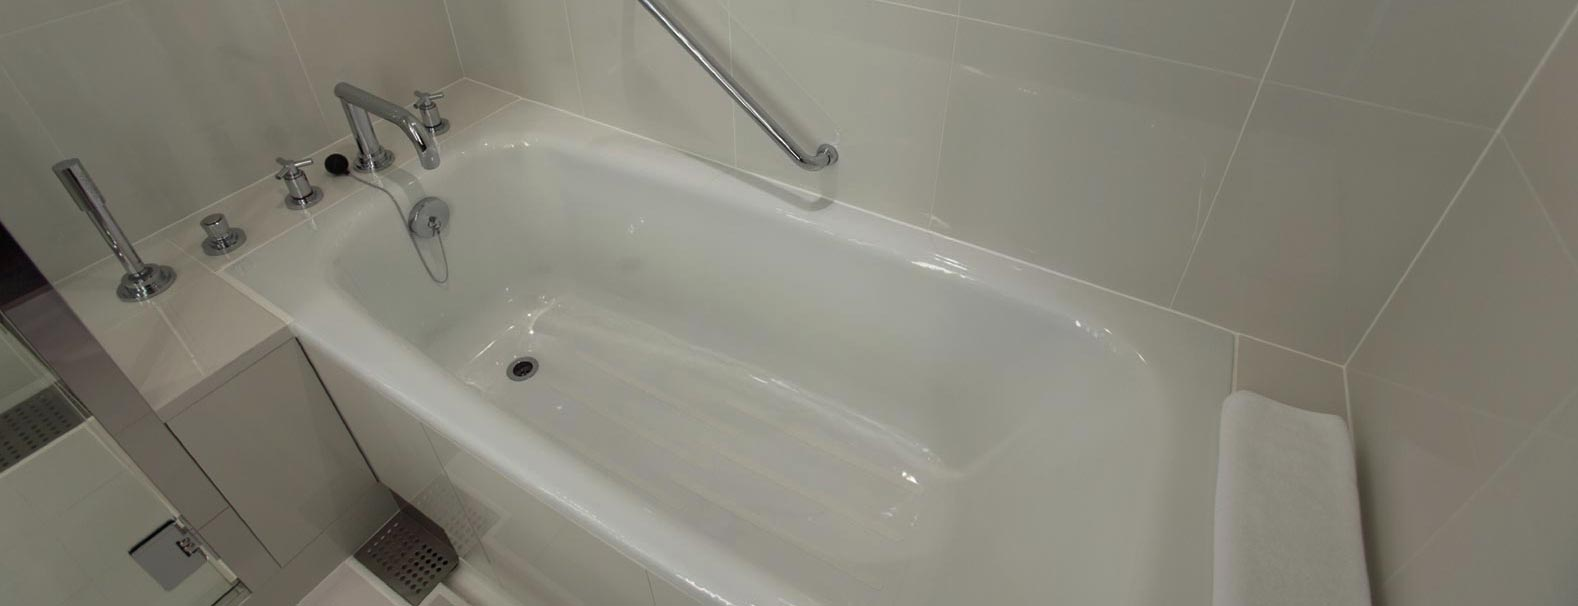 budgetrefinishing.com-bathtub-refinishing